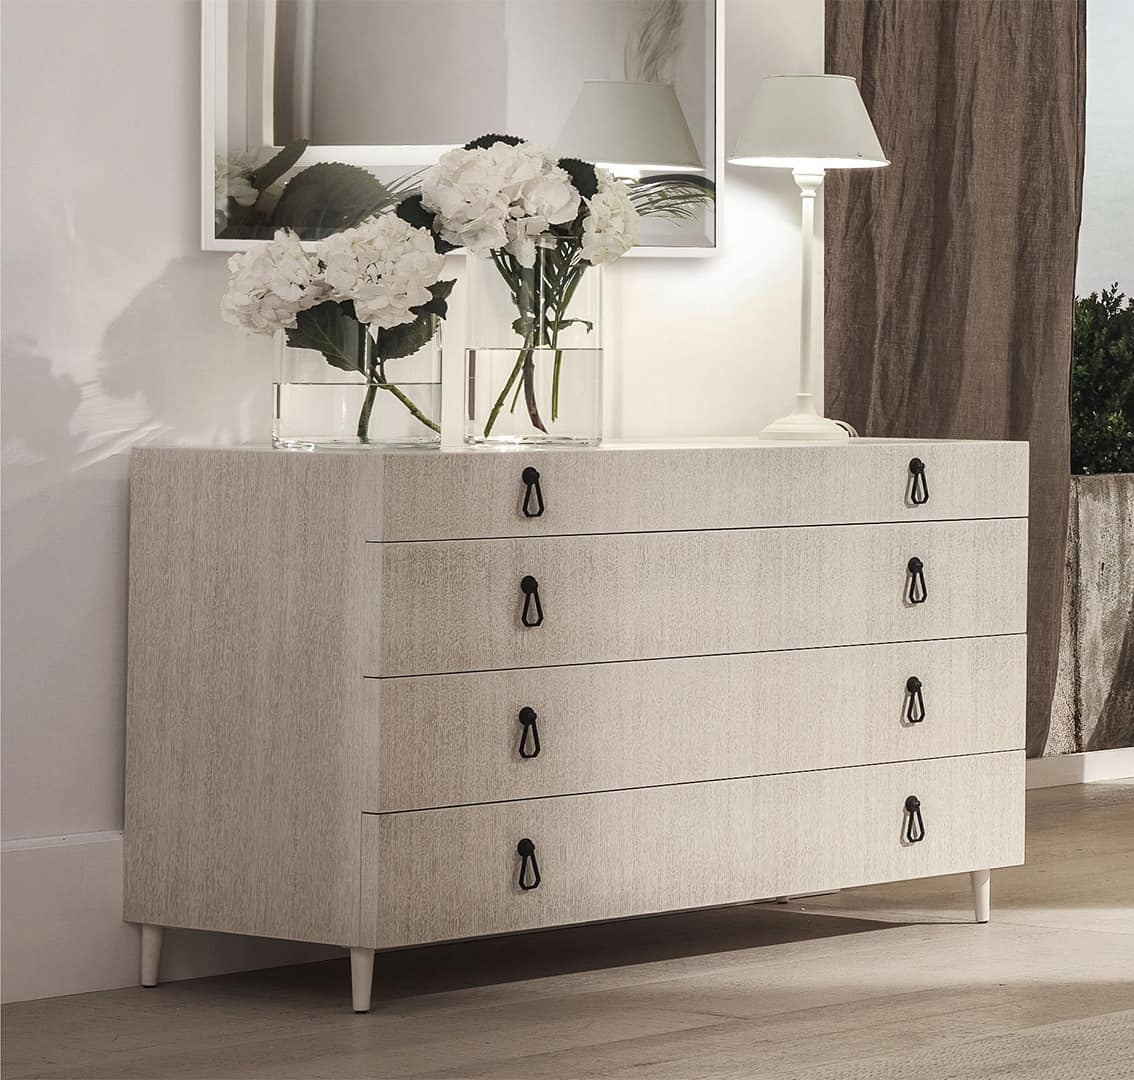 City comò, Dresser made of plywood, with metal feet tapered